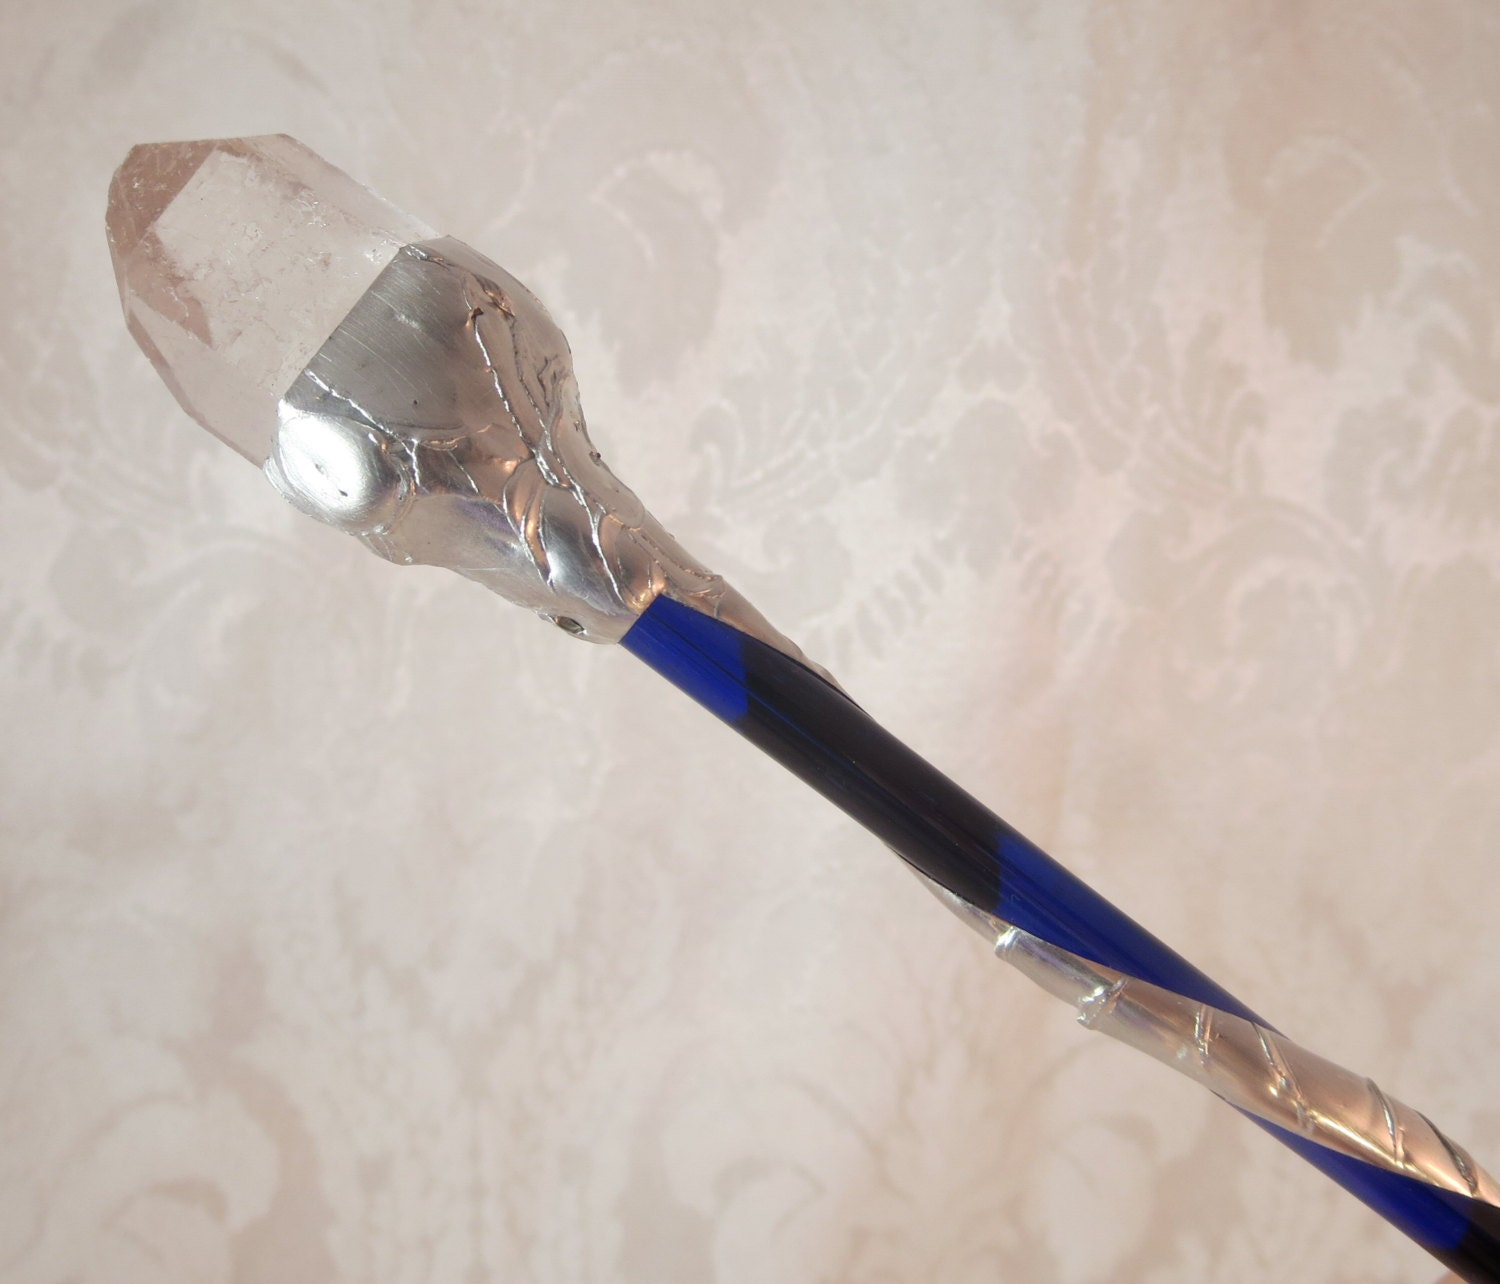 Cobalt blue quartz crystal wand for Static wand